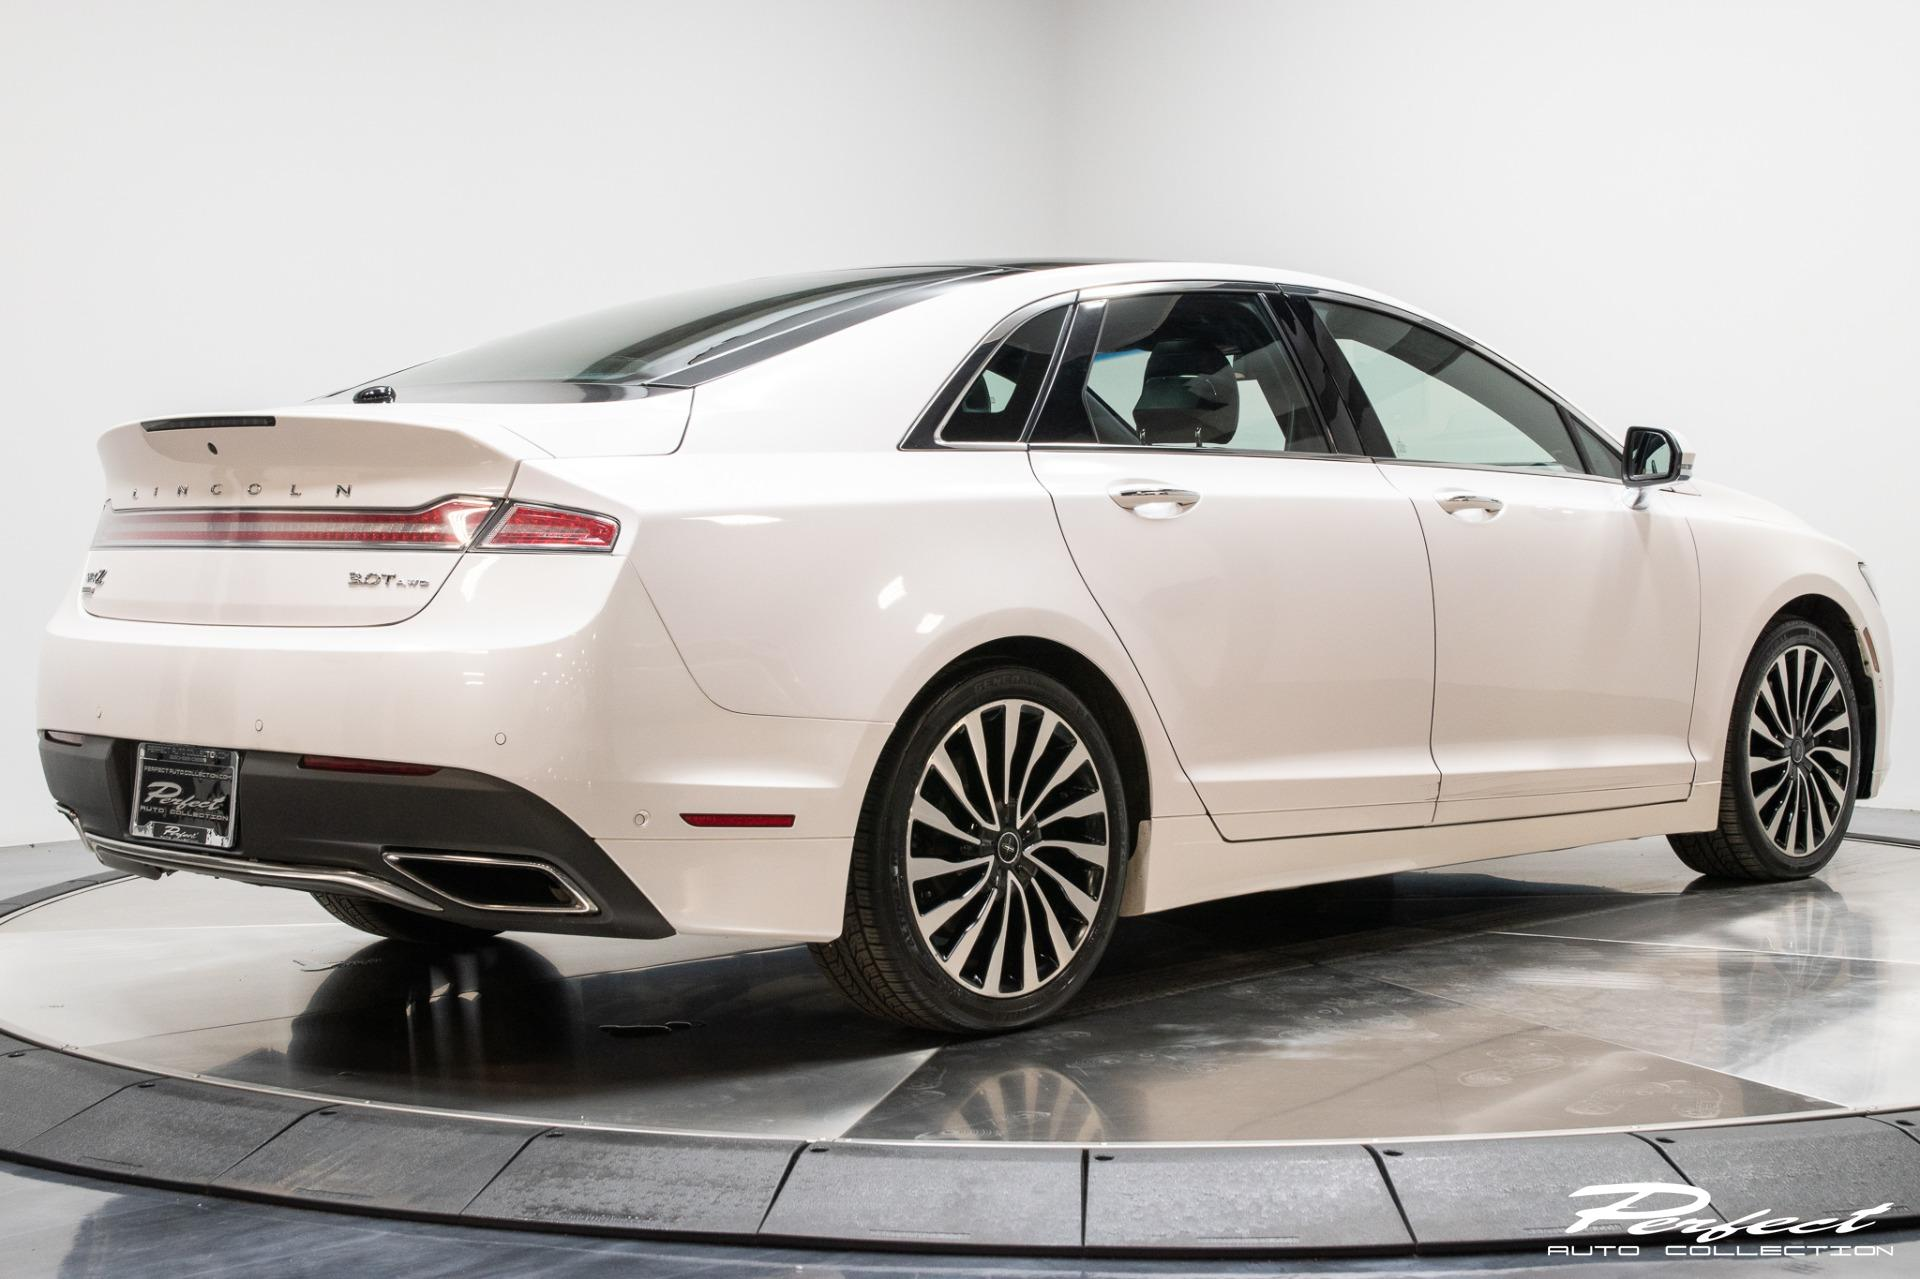 Used 2017 Lincoln MKZ Black Label for sale $26,293 at Perfect Auto Collection in Akron OH 44310 4